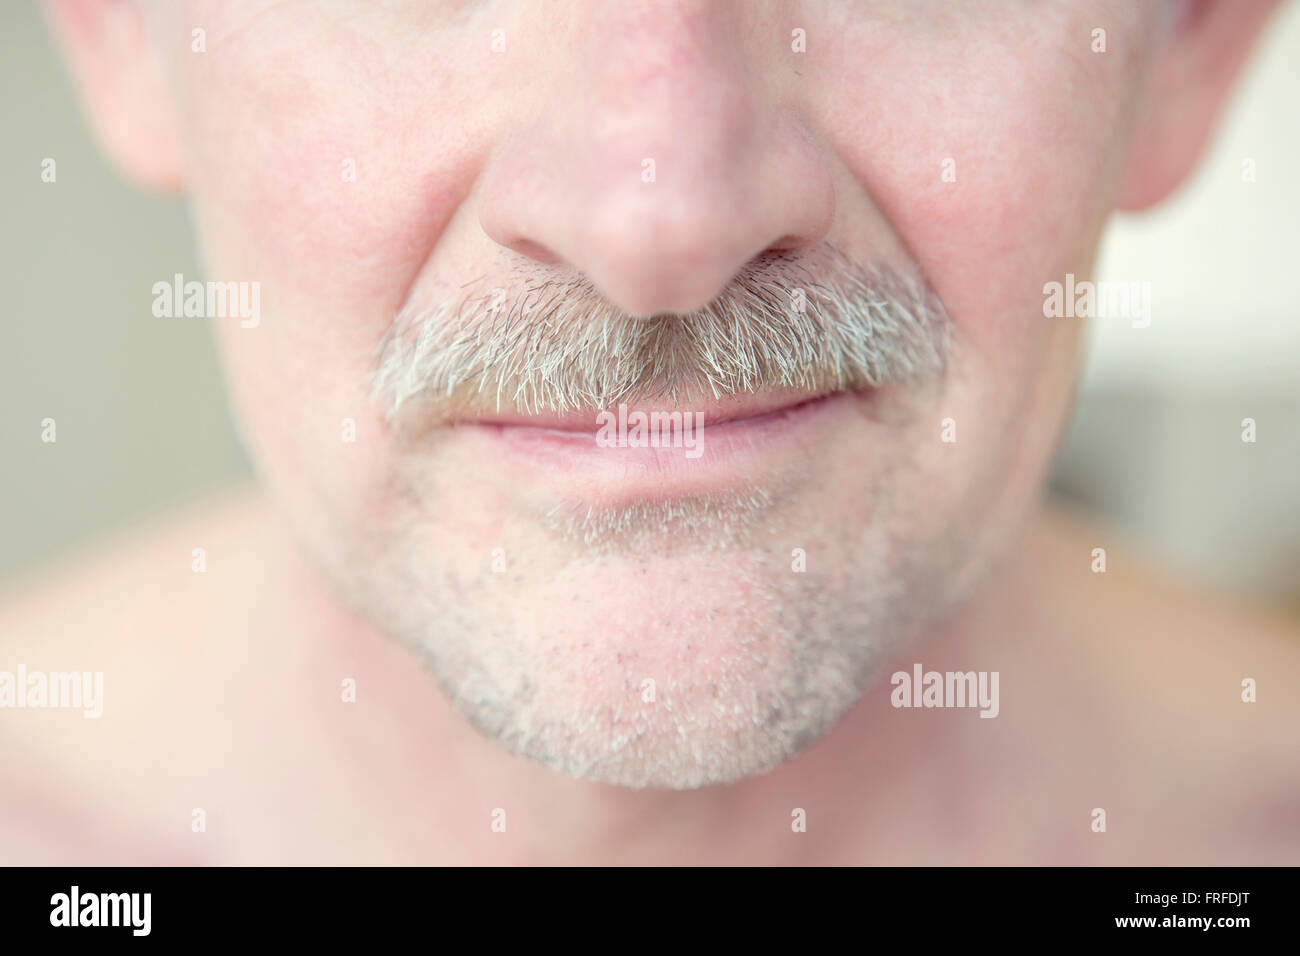 close-up of mature man with grey moustache - Stock Image